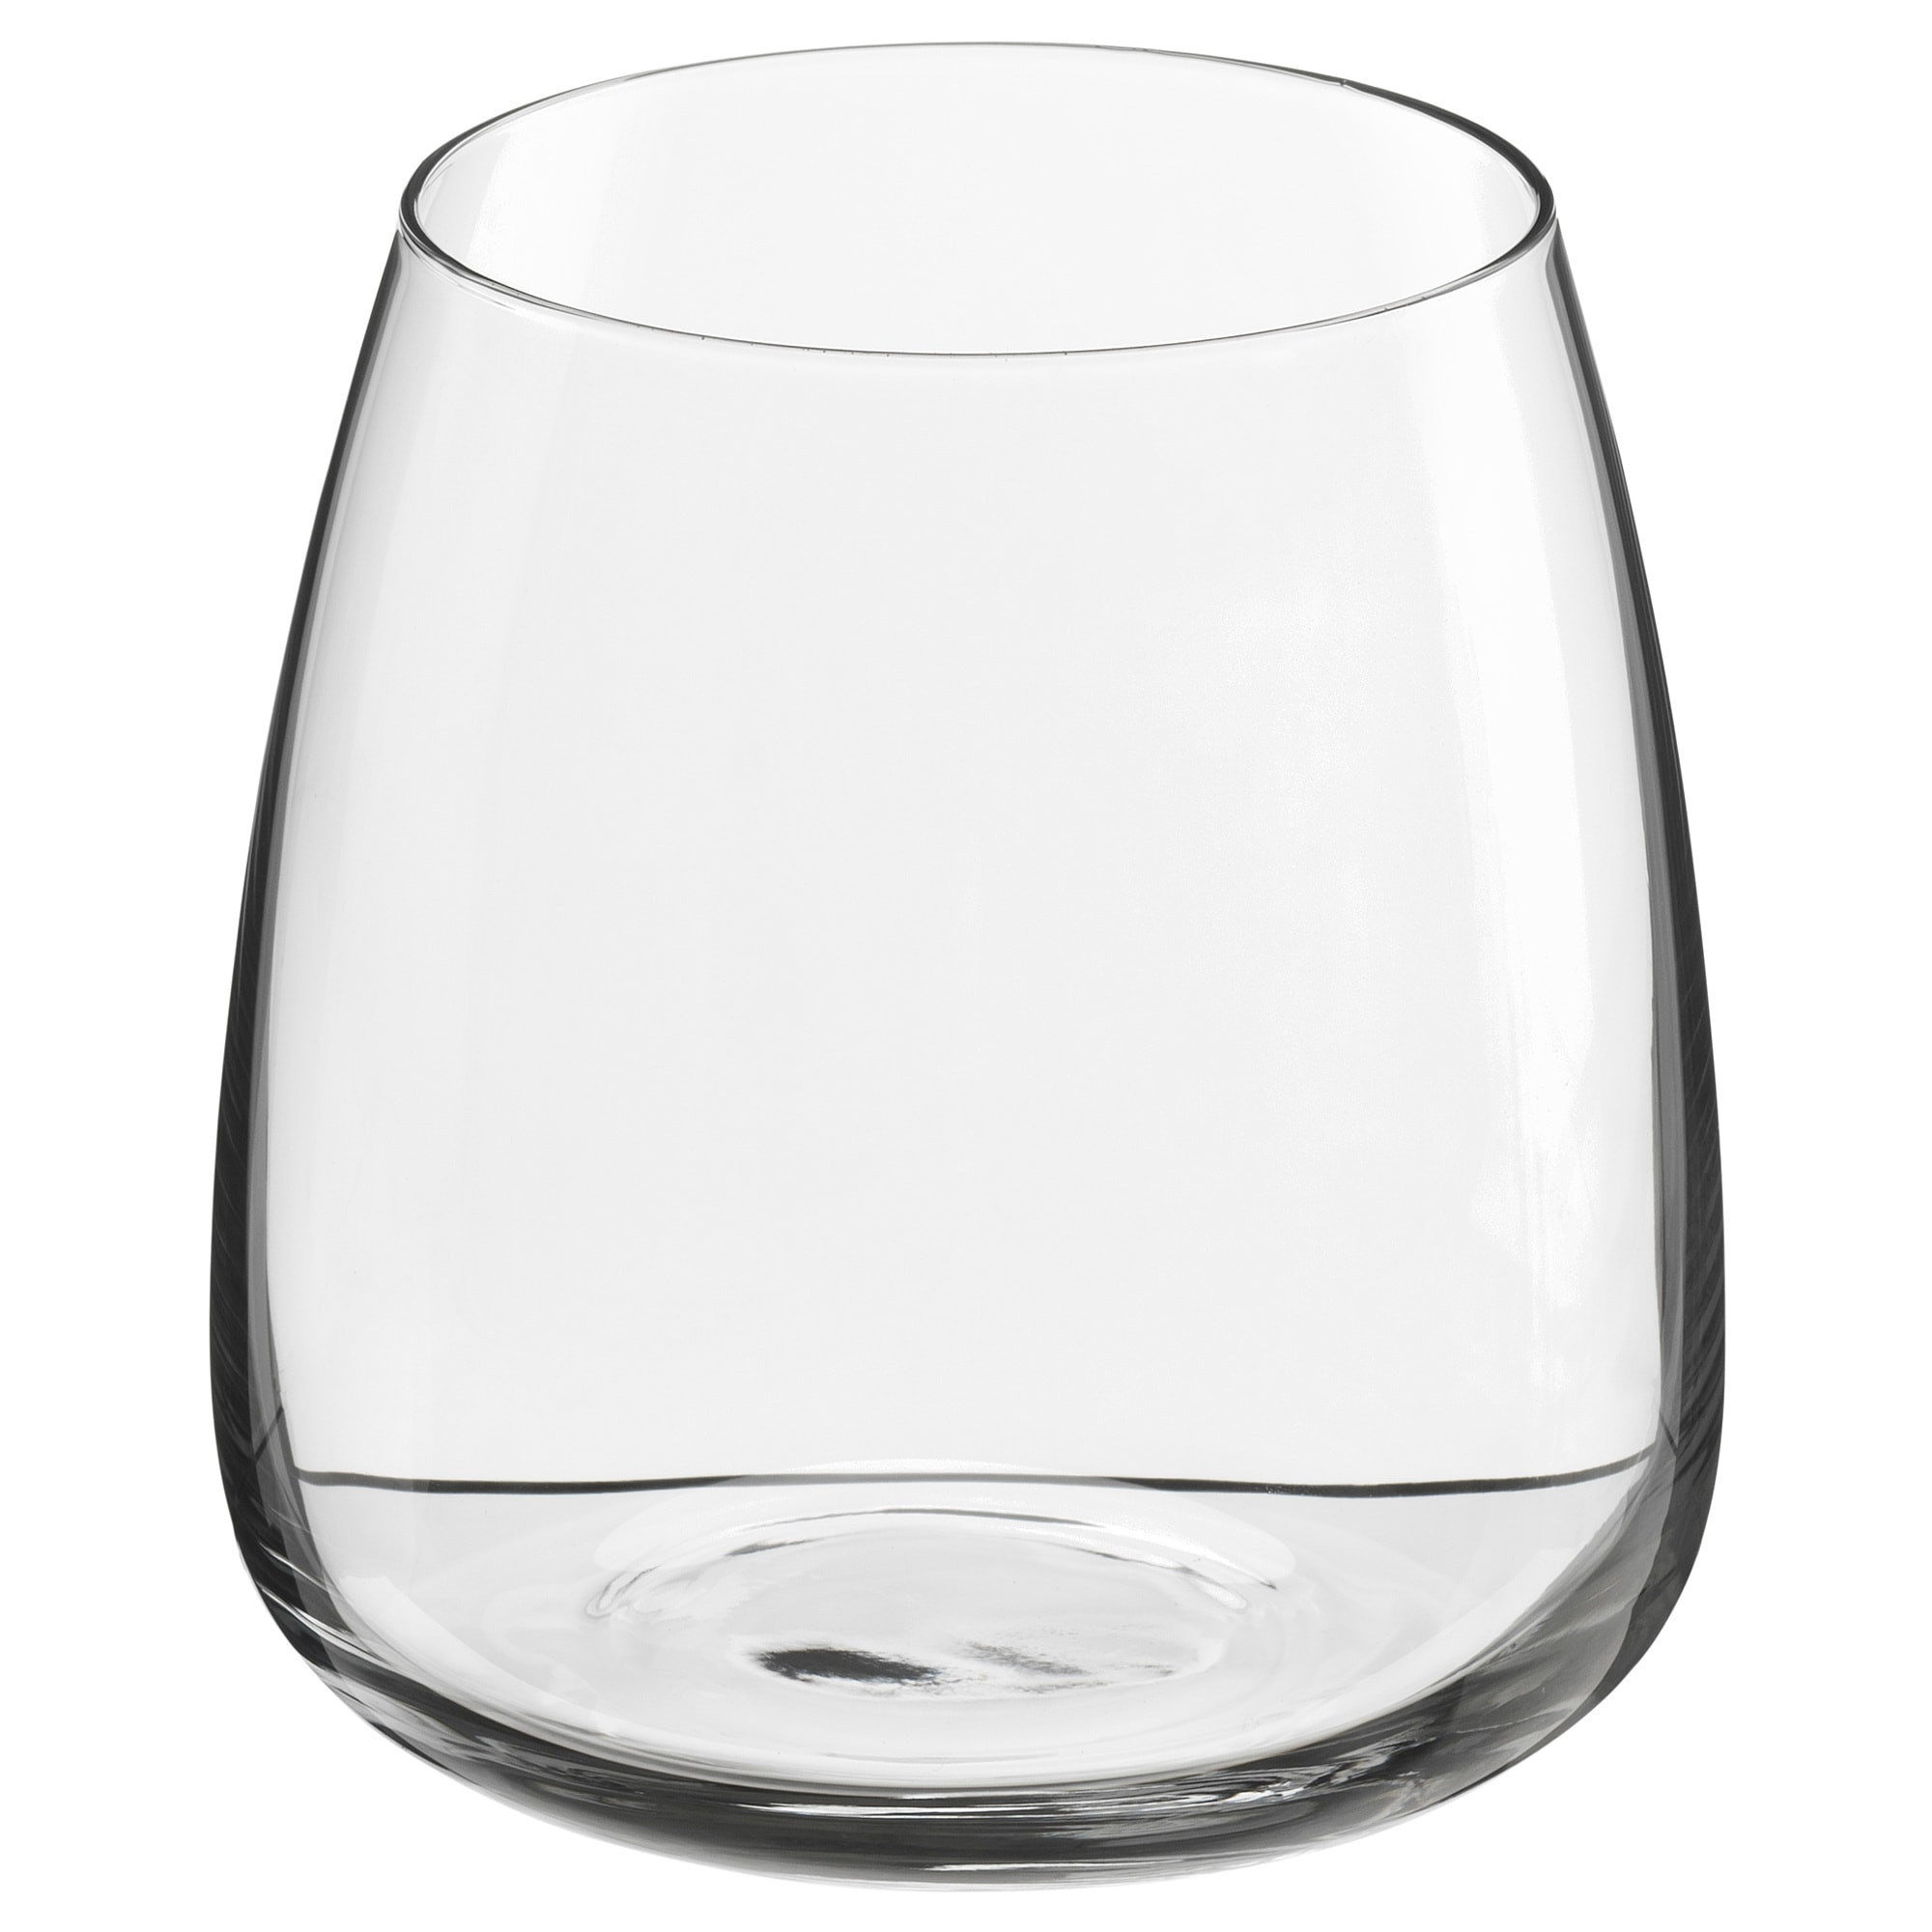 ikea rectangular glass vase of swedish midsommar collection ikea with ikea dyrgrip glass with a shine and clarity similar to a crystal glass but completely